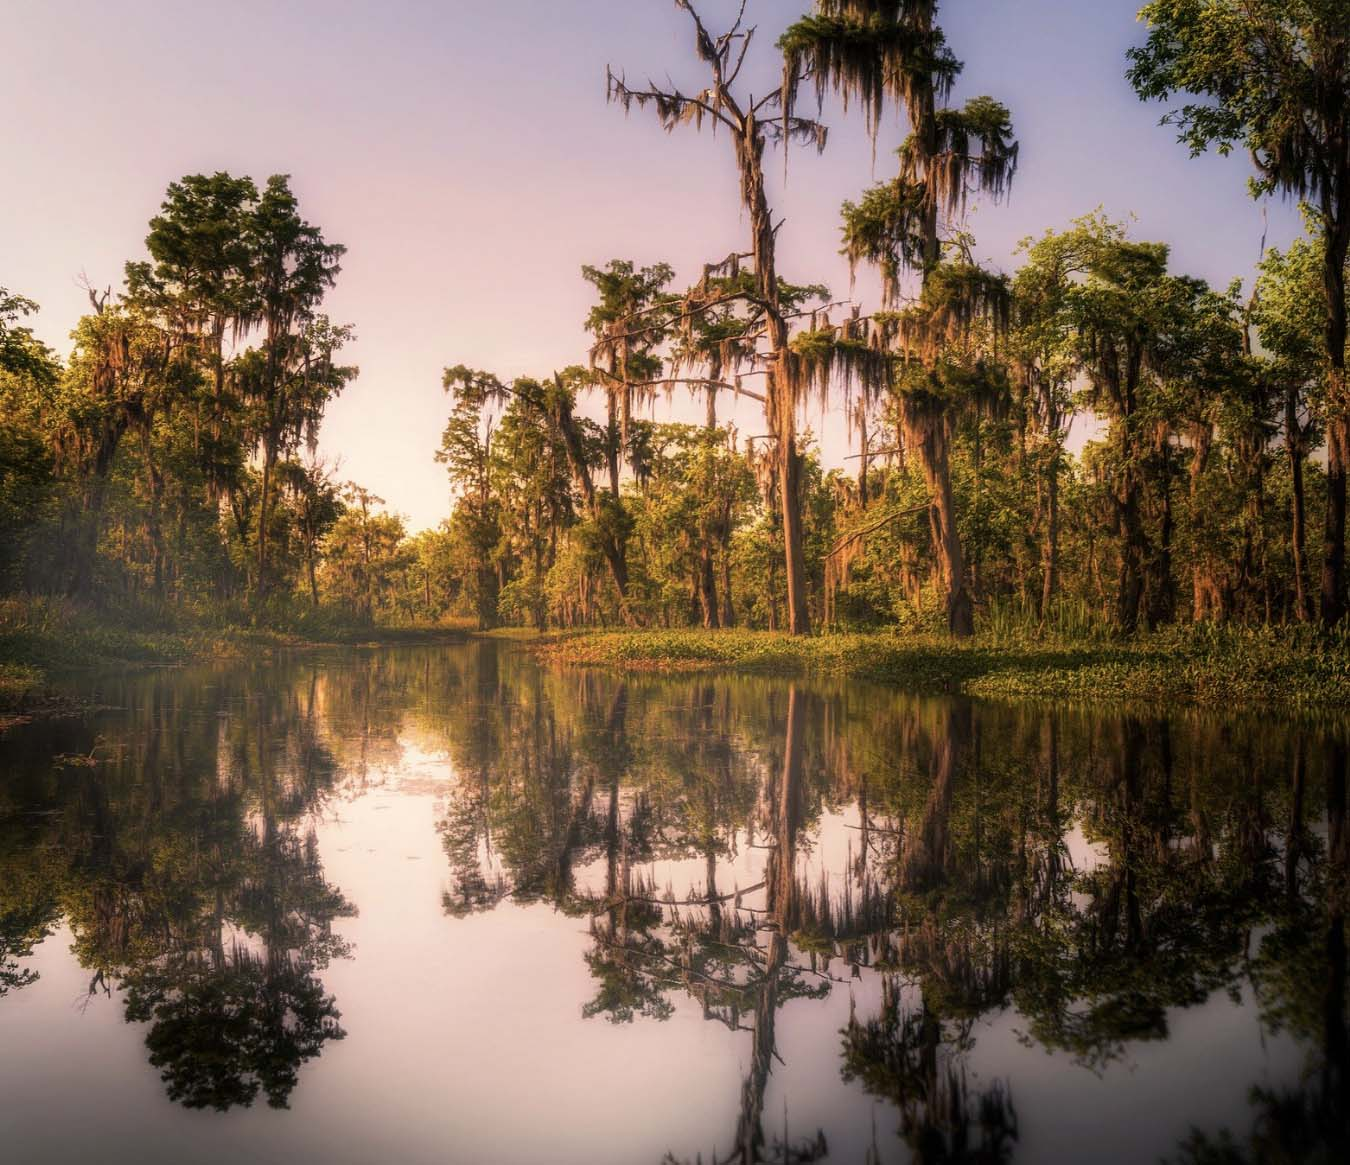 Things to Do in New Orleans - Gator Tour